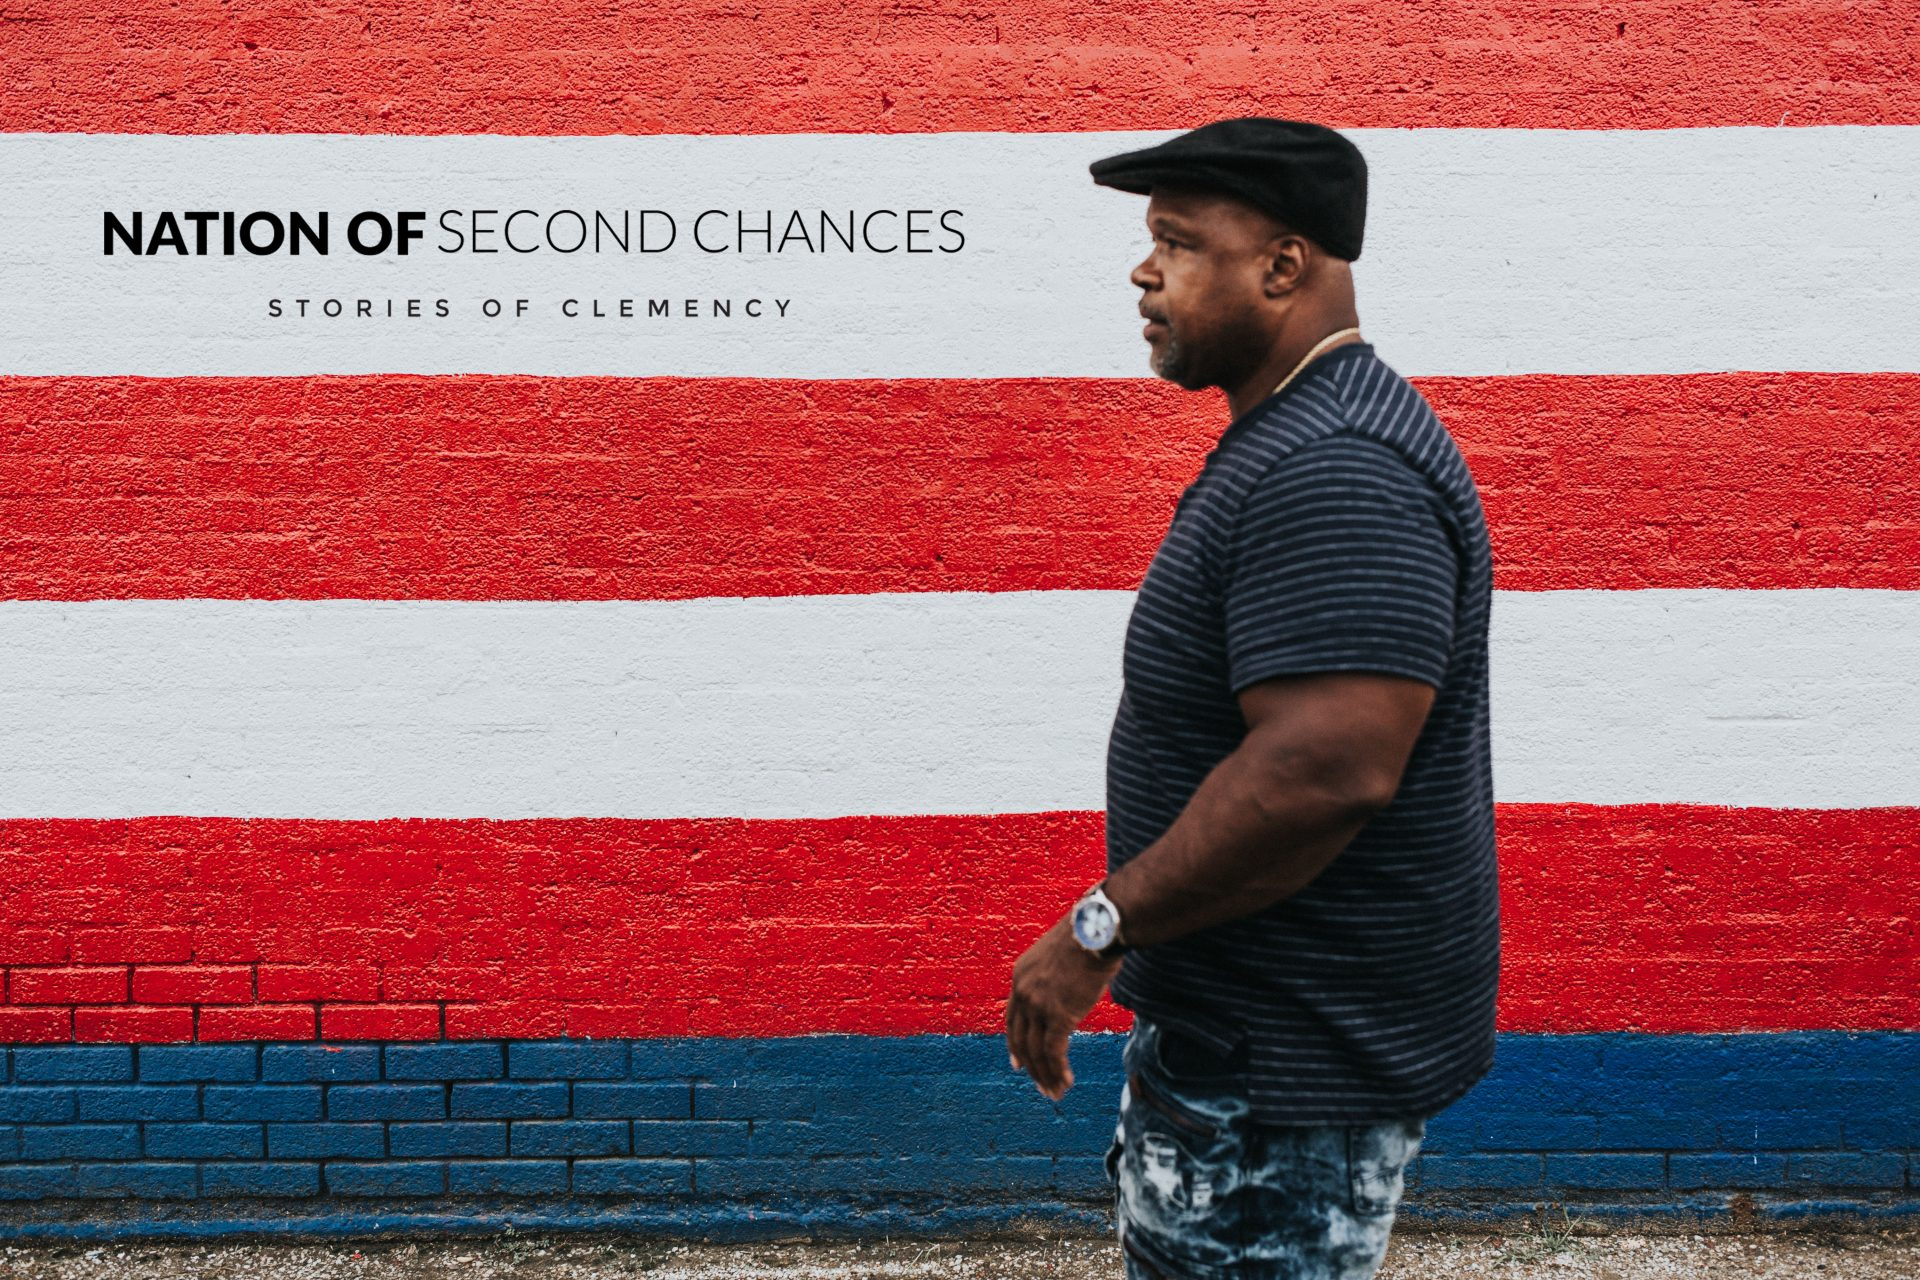 Nation of Second Chances